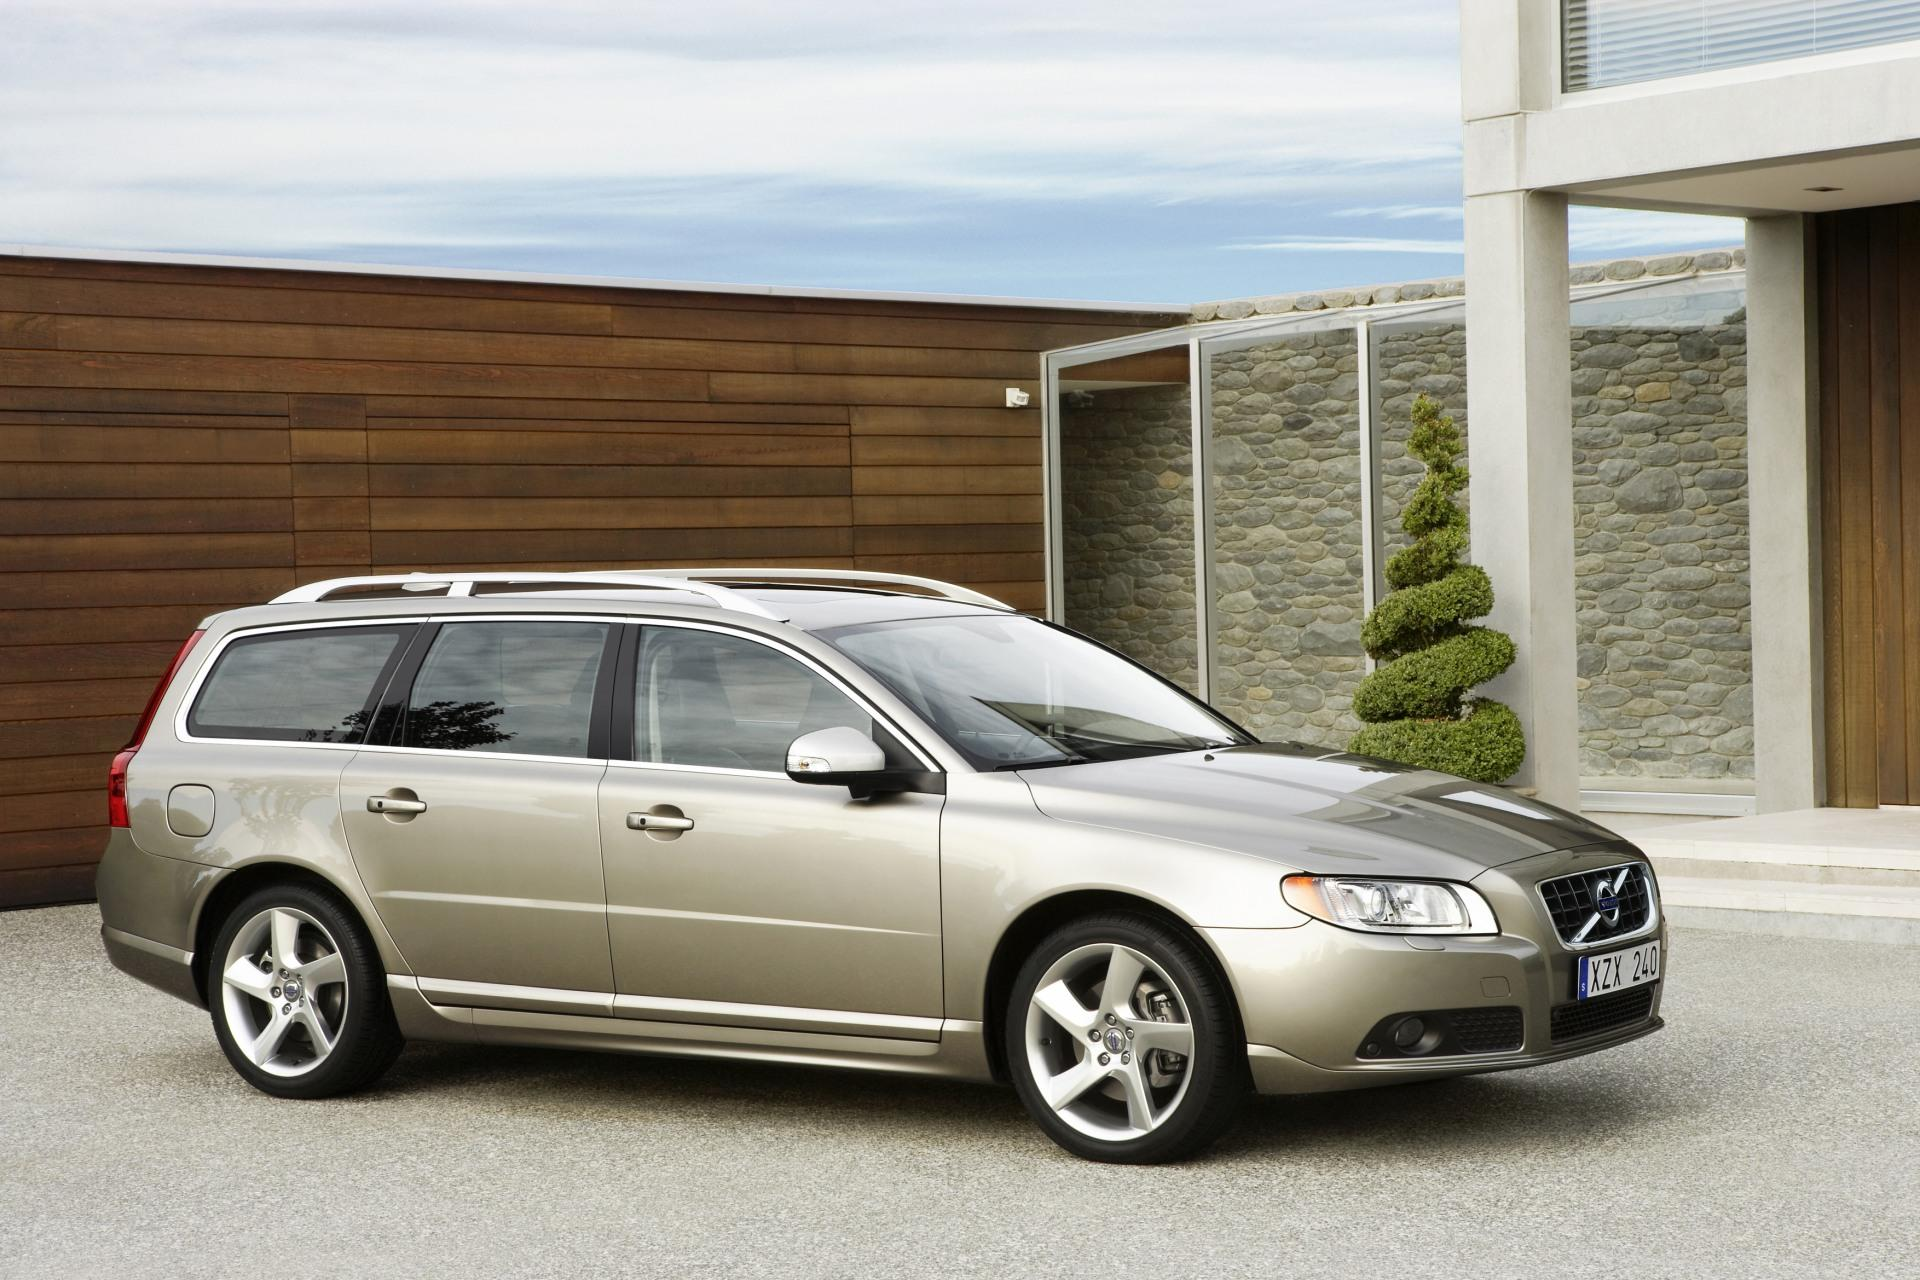 2010 Volvo V70 News And Information Conceptcarz Com